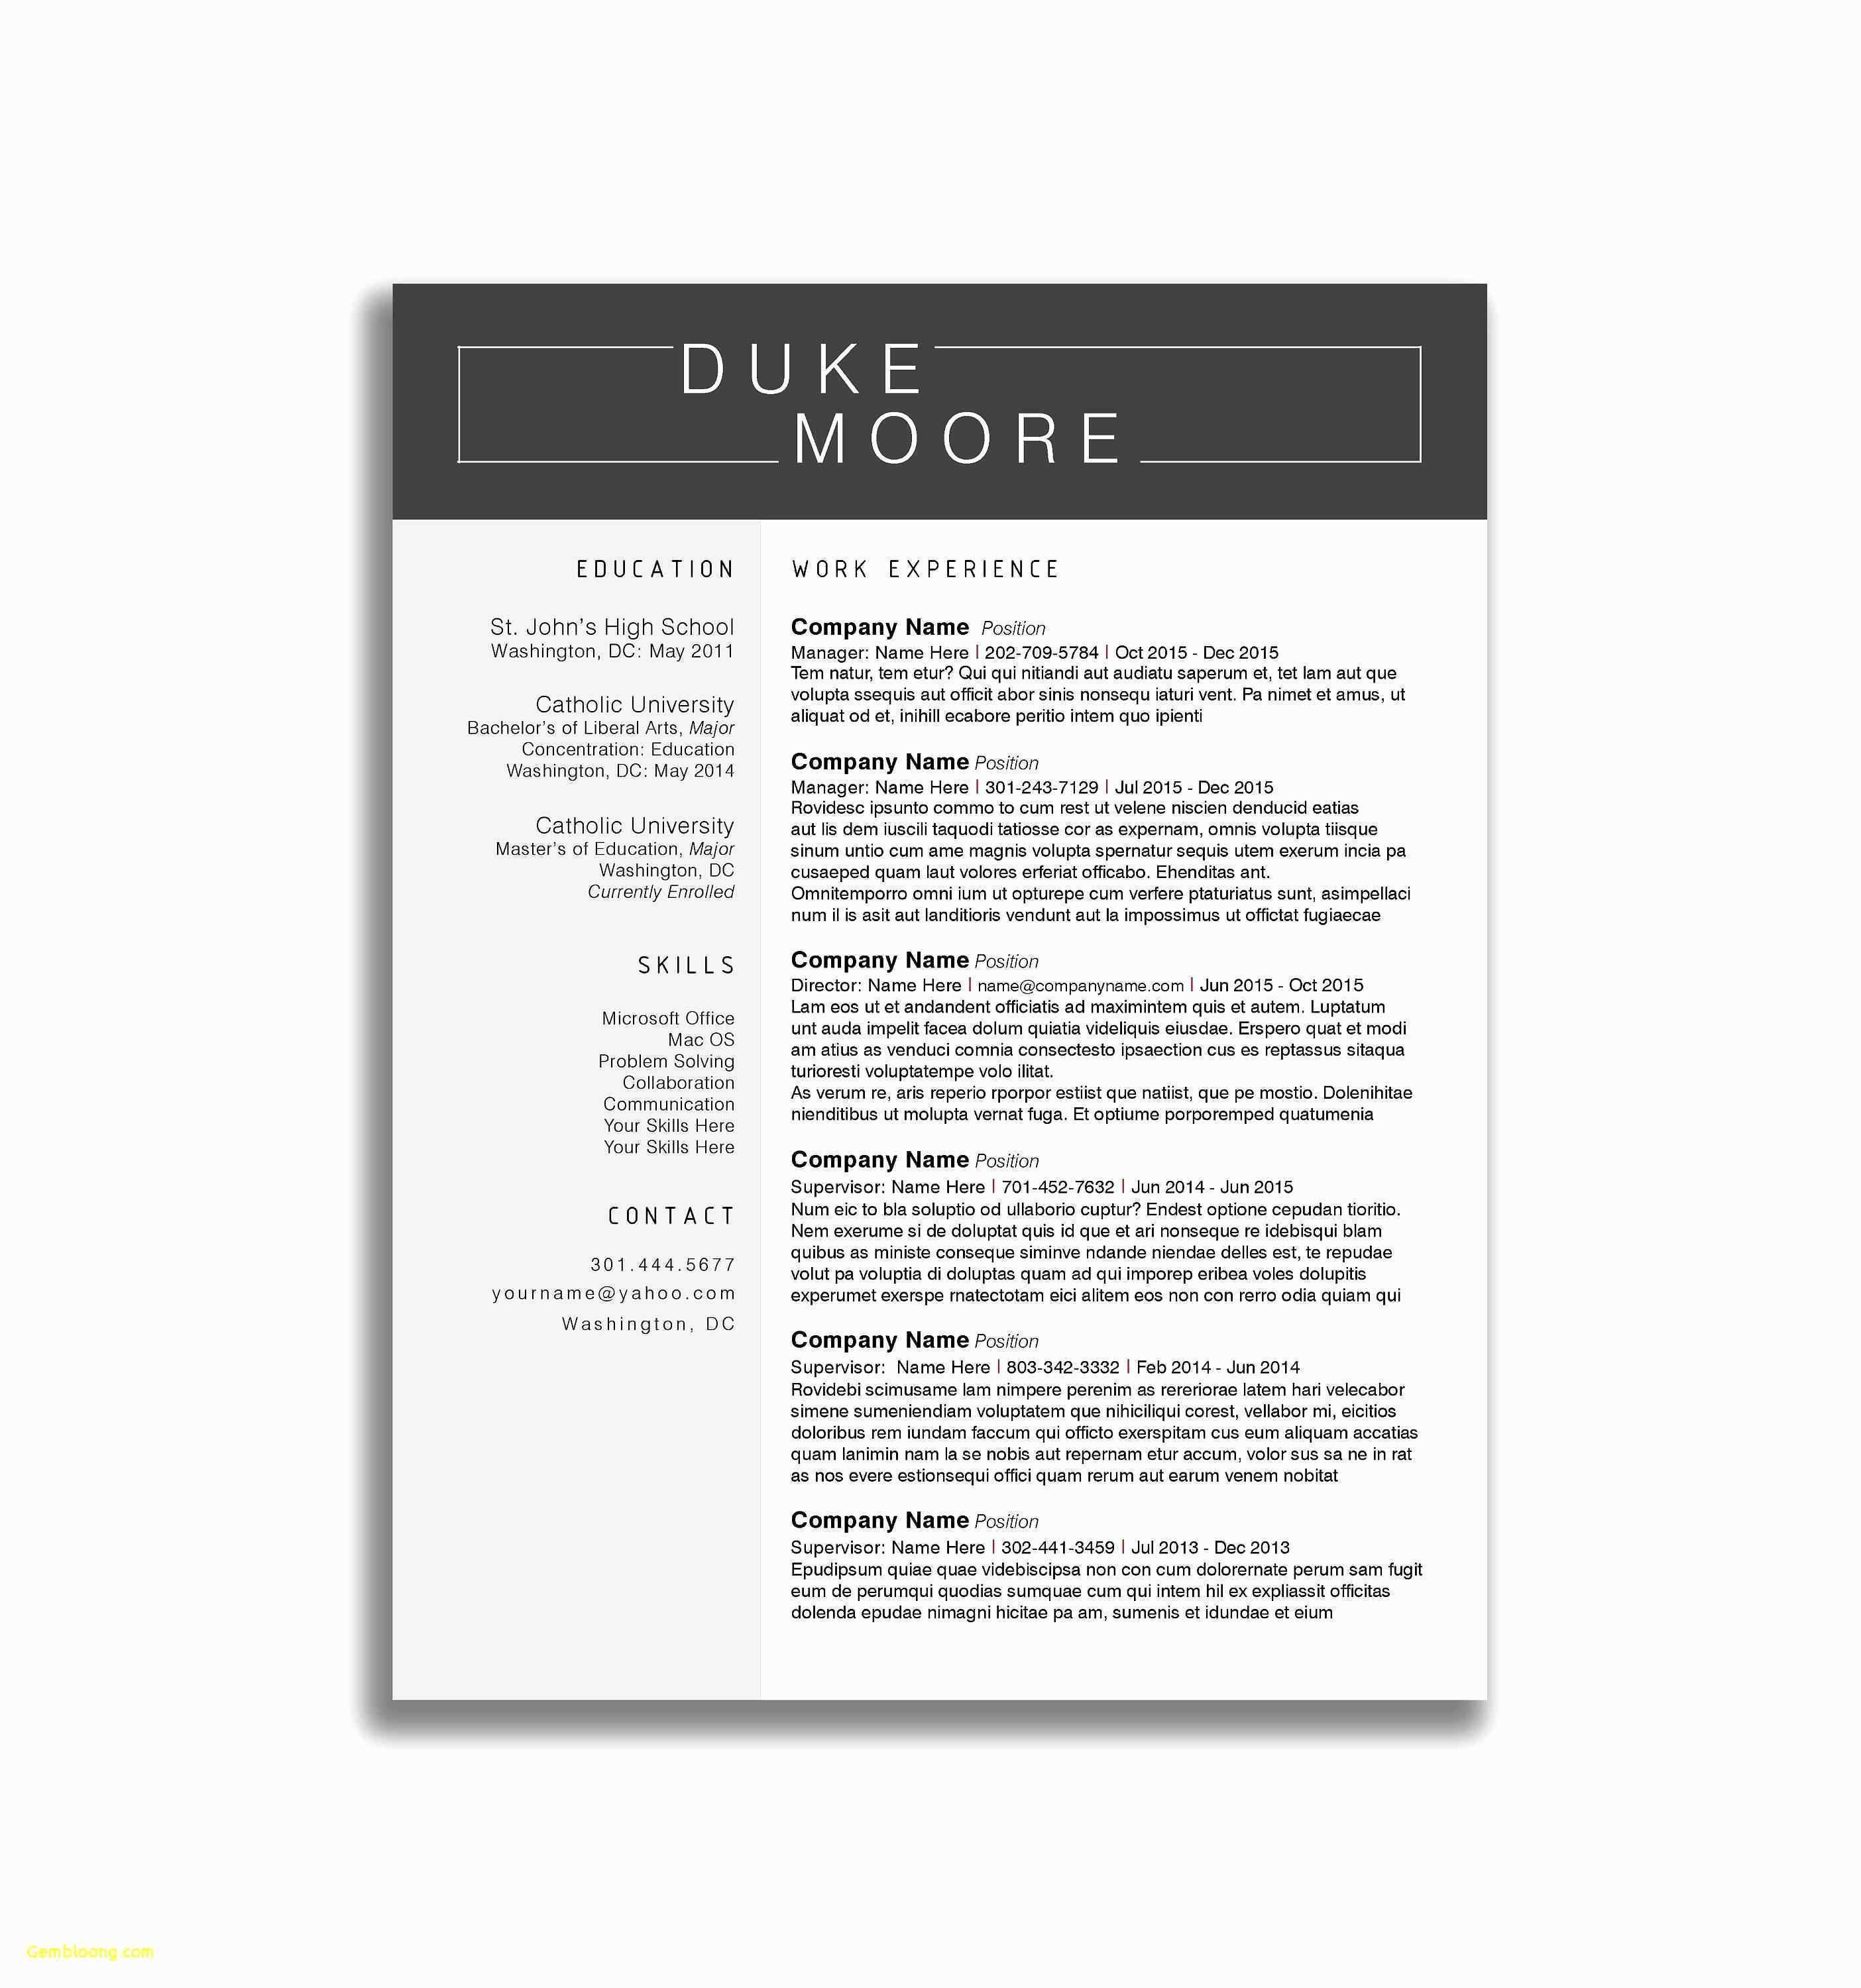 Medical assistant Resume with No Experience - Medical assistant Resume with No Experience Luxury Medical assistant